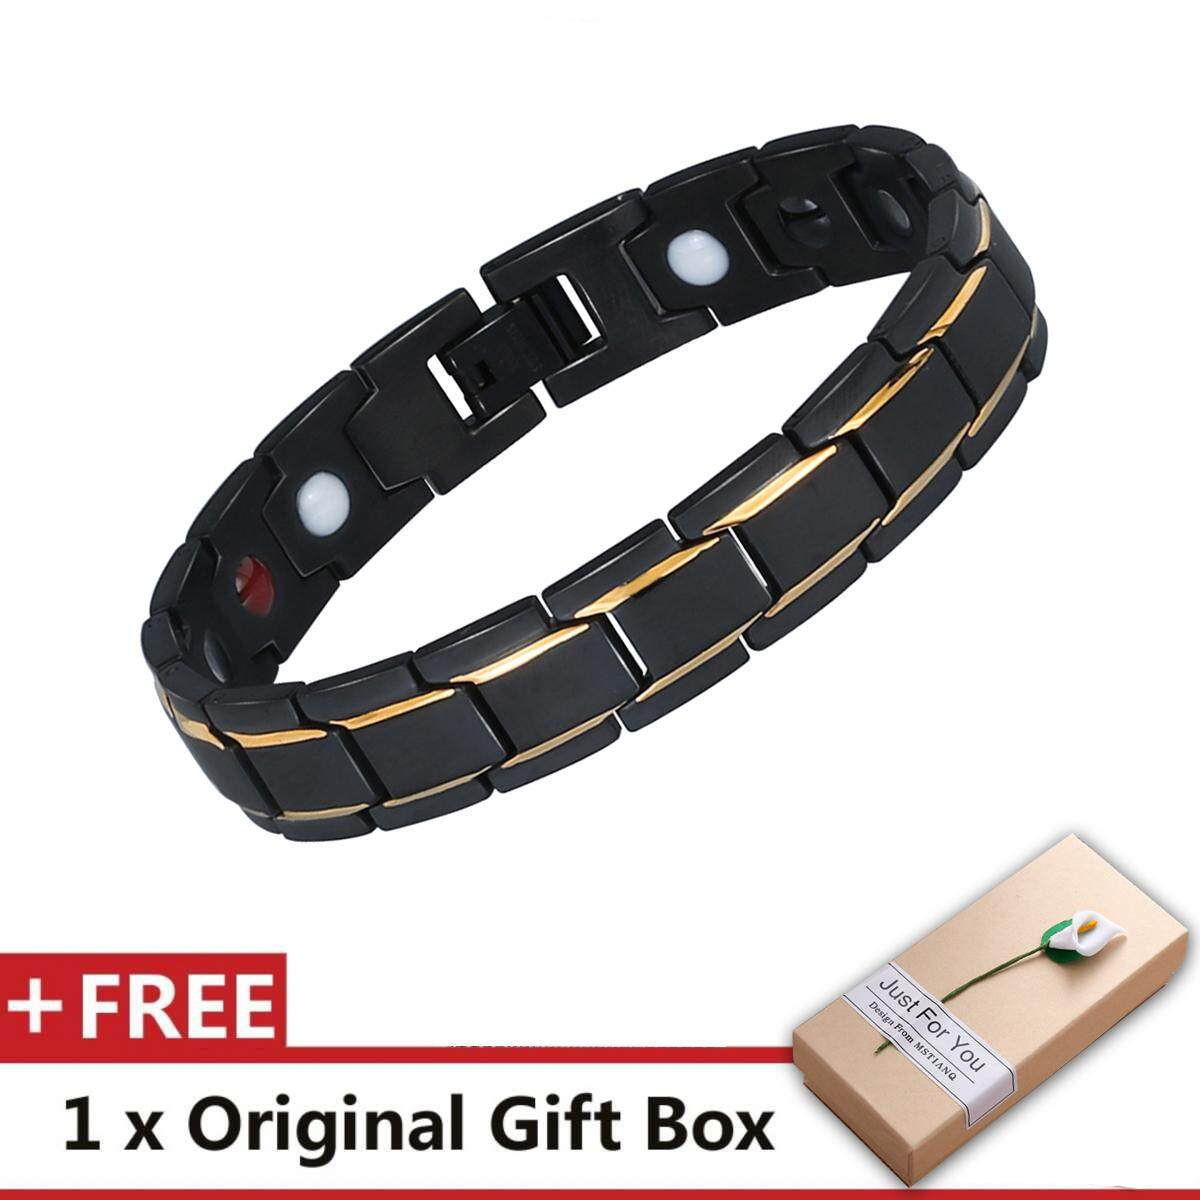 Luxury Fashion Health Energy Bracelet Bangle Men 316L Stainless Steel Magnetic Bracelets Black & Gold Plated Jewelry image on snachetto.com